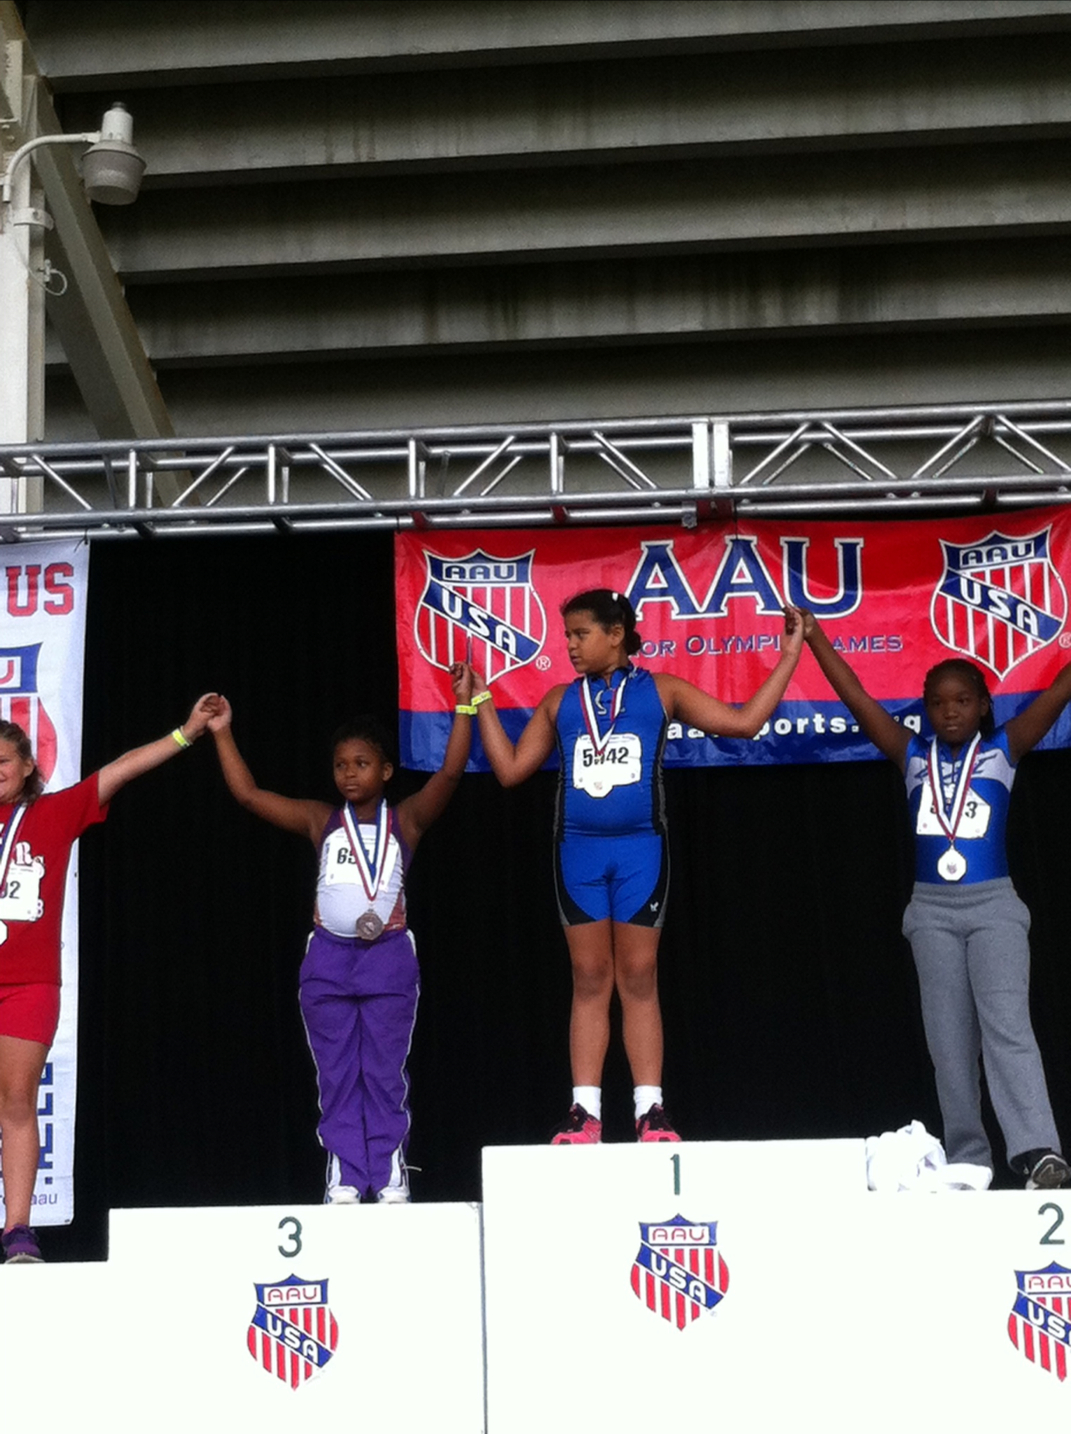 Octavia on the podium for the shot put